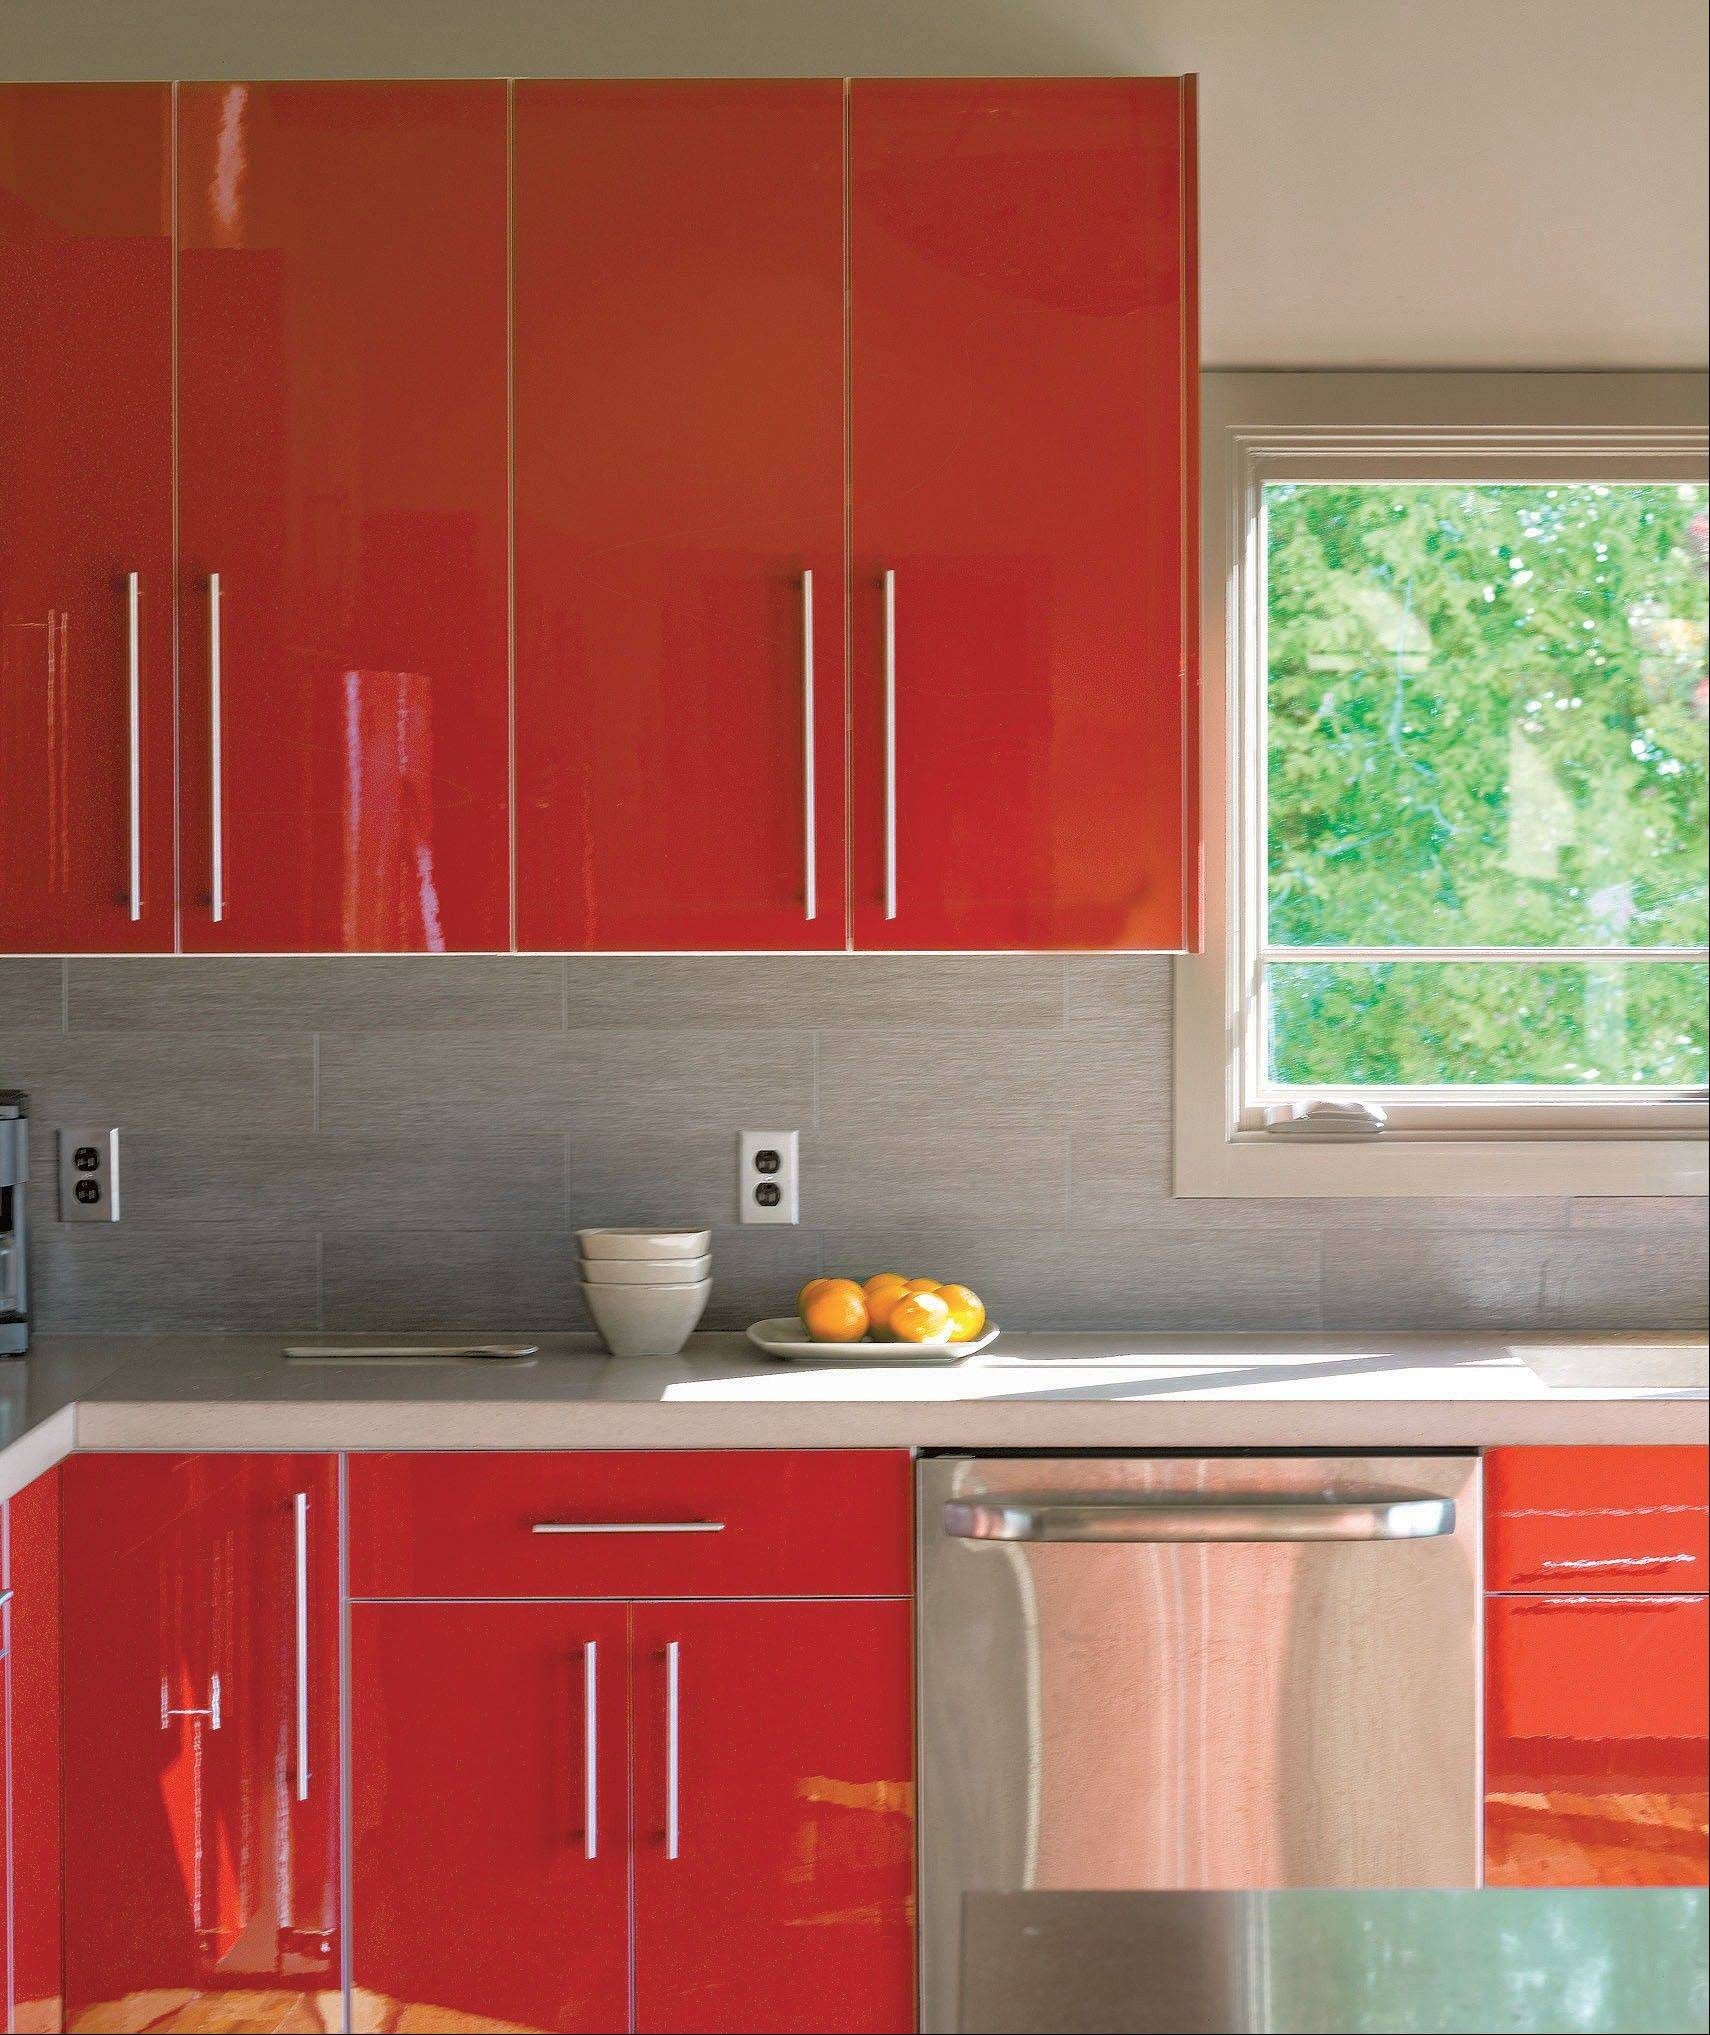 Shiny Kitchen Cabinets With A Colorful High Gloss Finish Are Back In Style